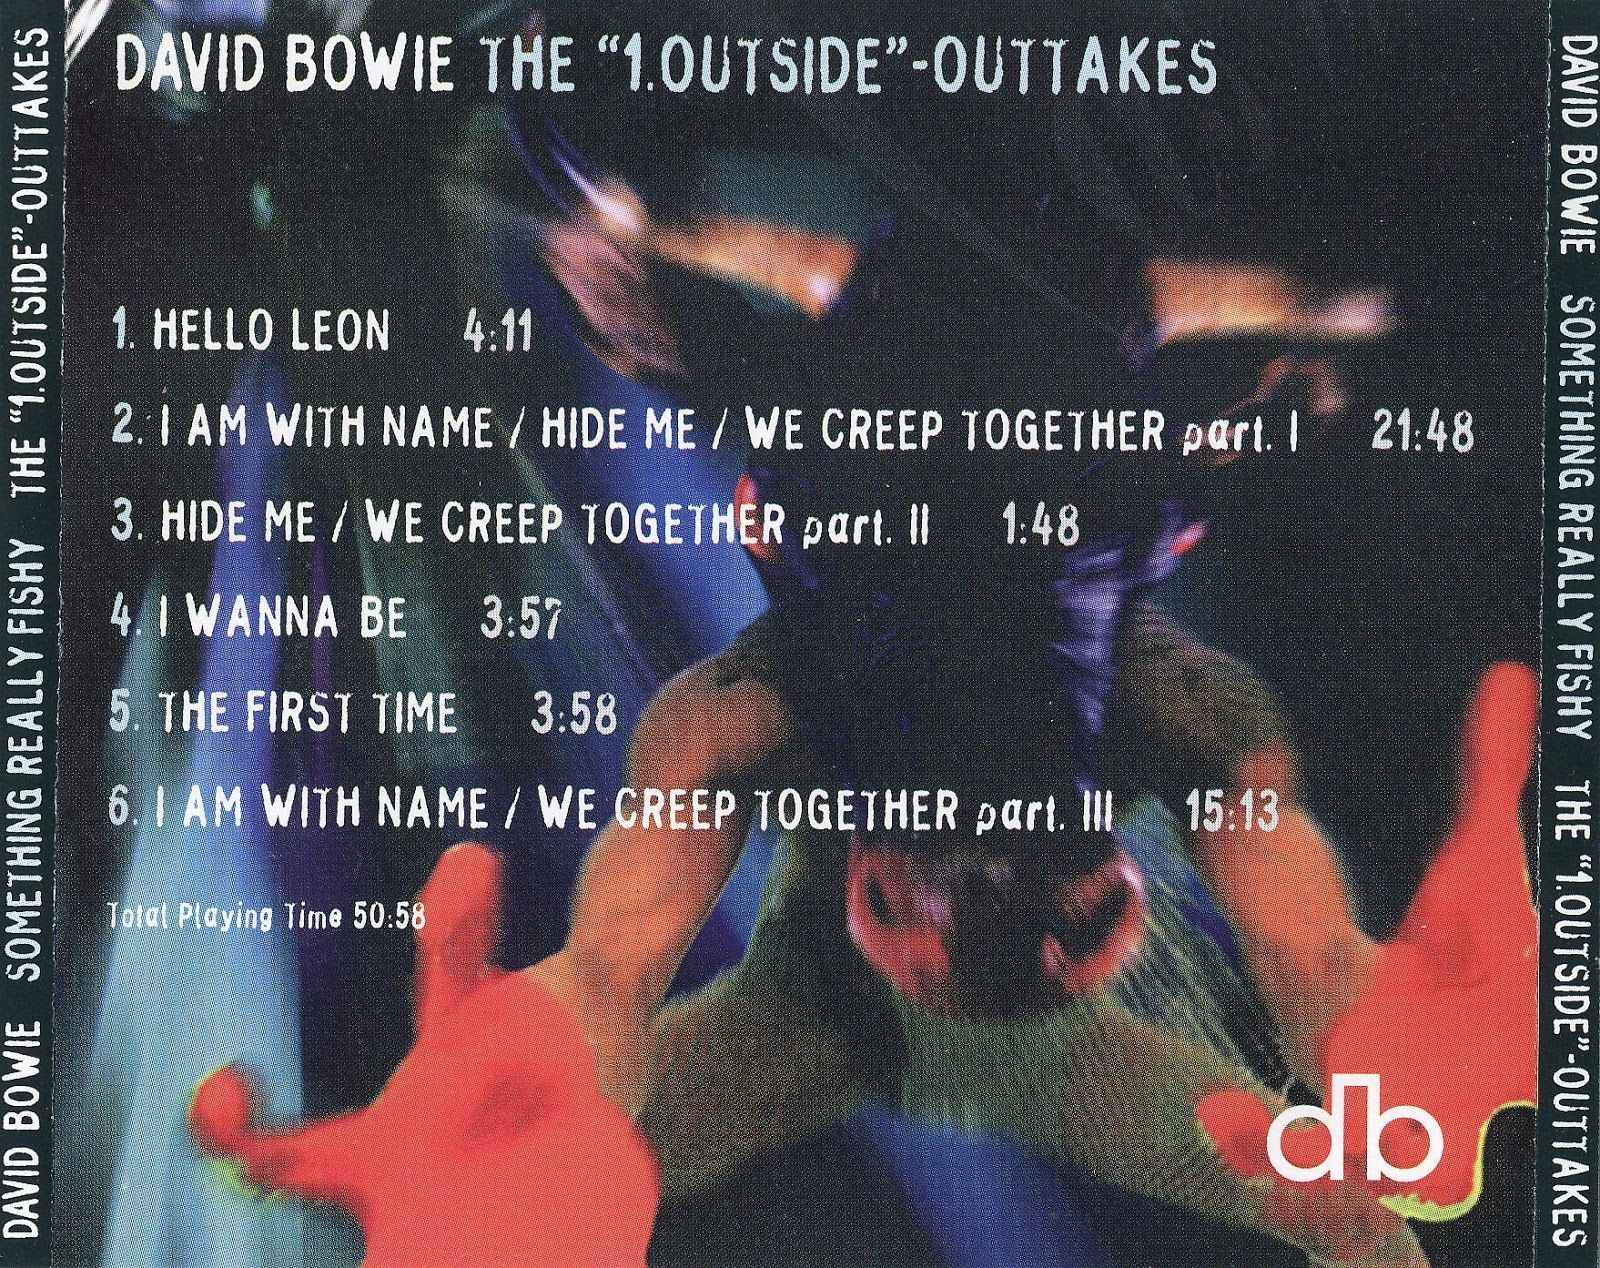 David Bowie Something Really Fishy 1 Outside Outtakes David Bowie The Outsiders Bowie